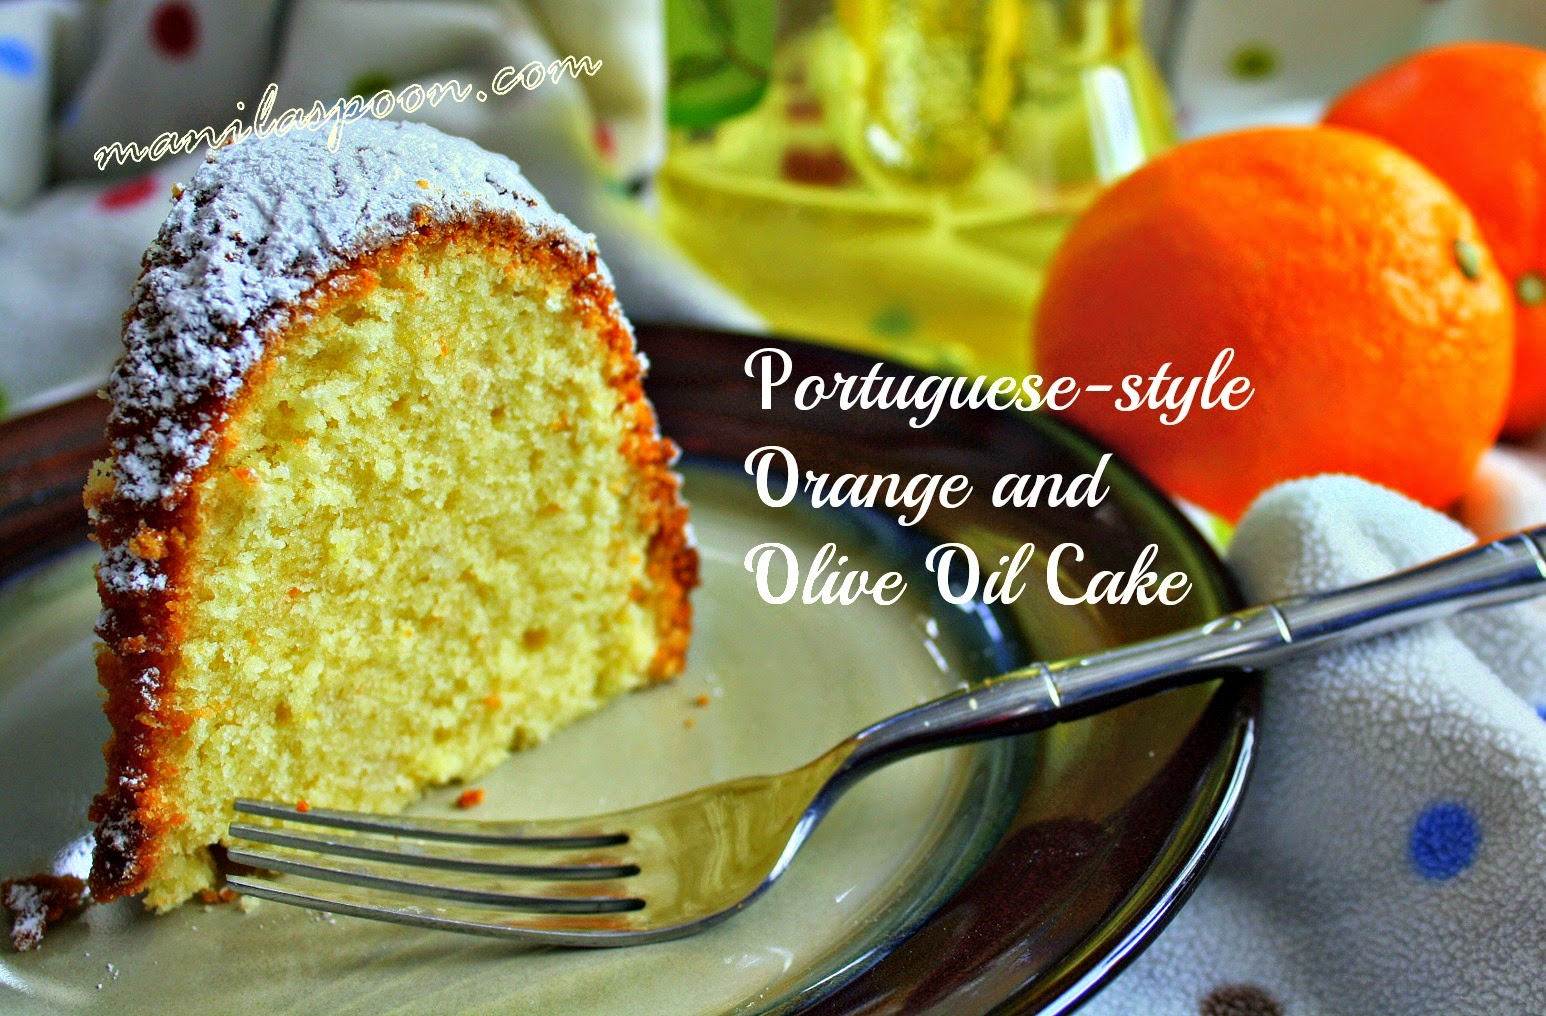 Moist and so delicious, this orange and olive oil cake is bursting with fruity flavors from fresh orange juice and cranberries. Perfect for your Christmas or New Year dessert table! | manilaspoon.com